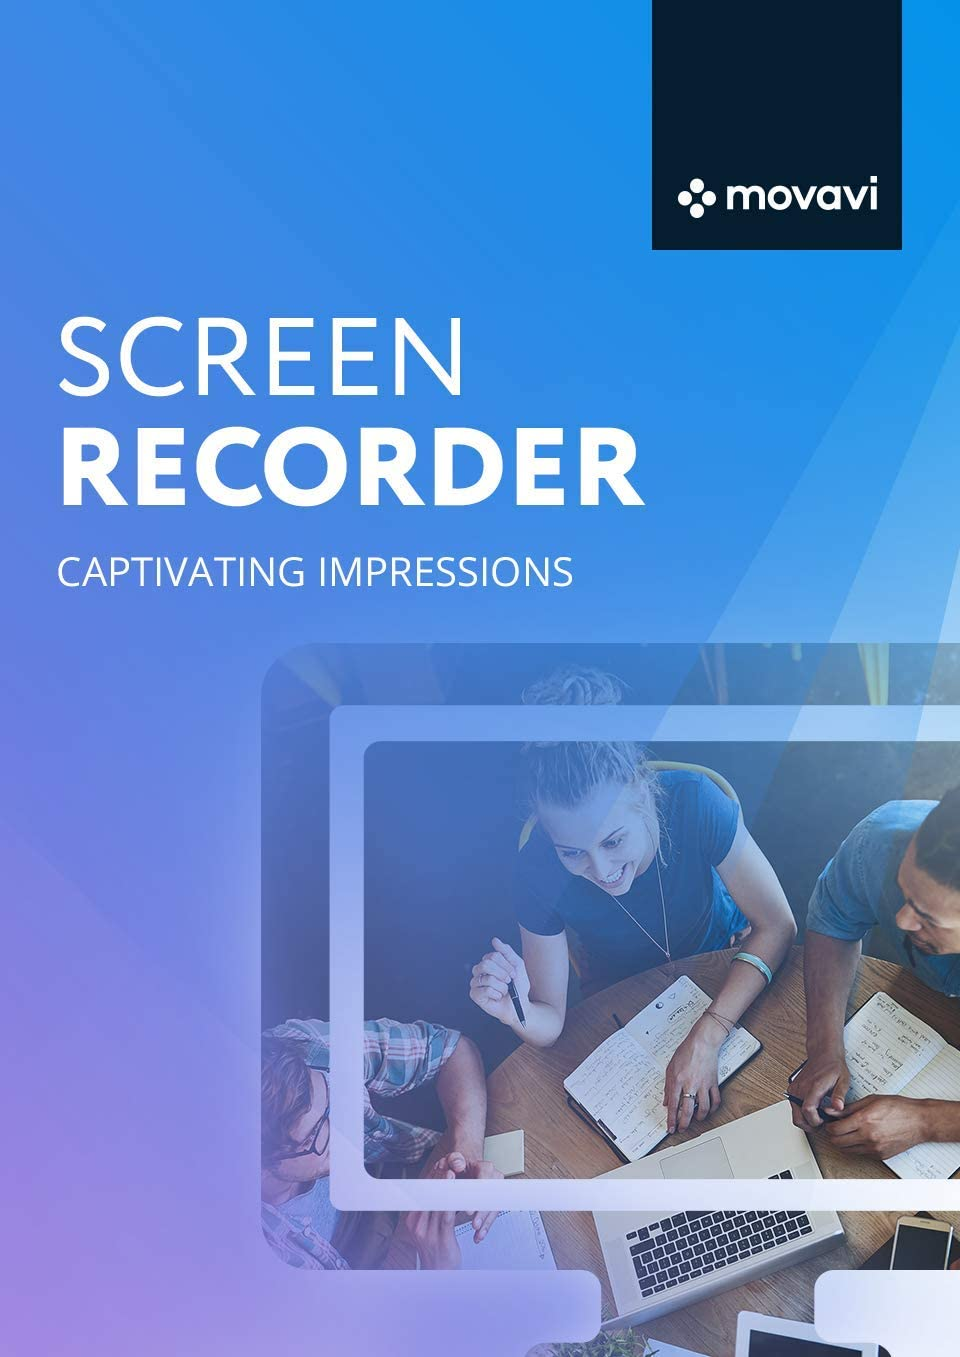 Movavi Screen Recorder 11 Personal [PC Download] 611c4HfYt6L